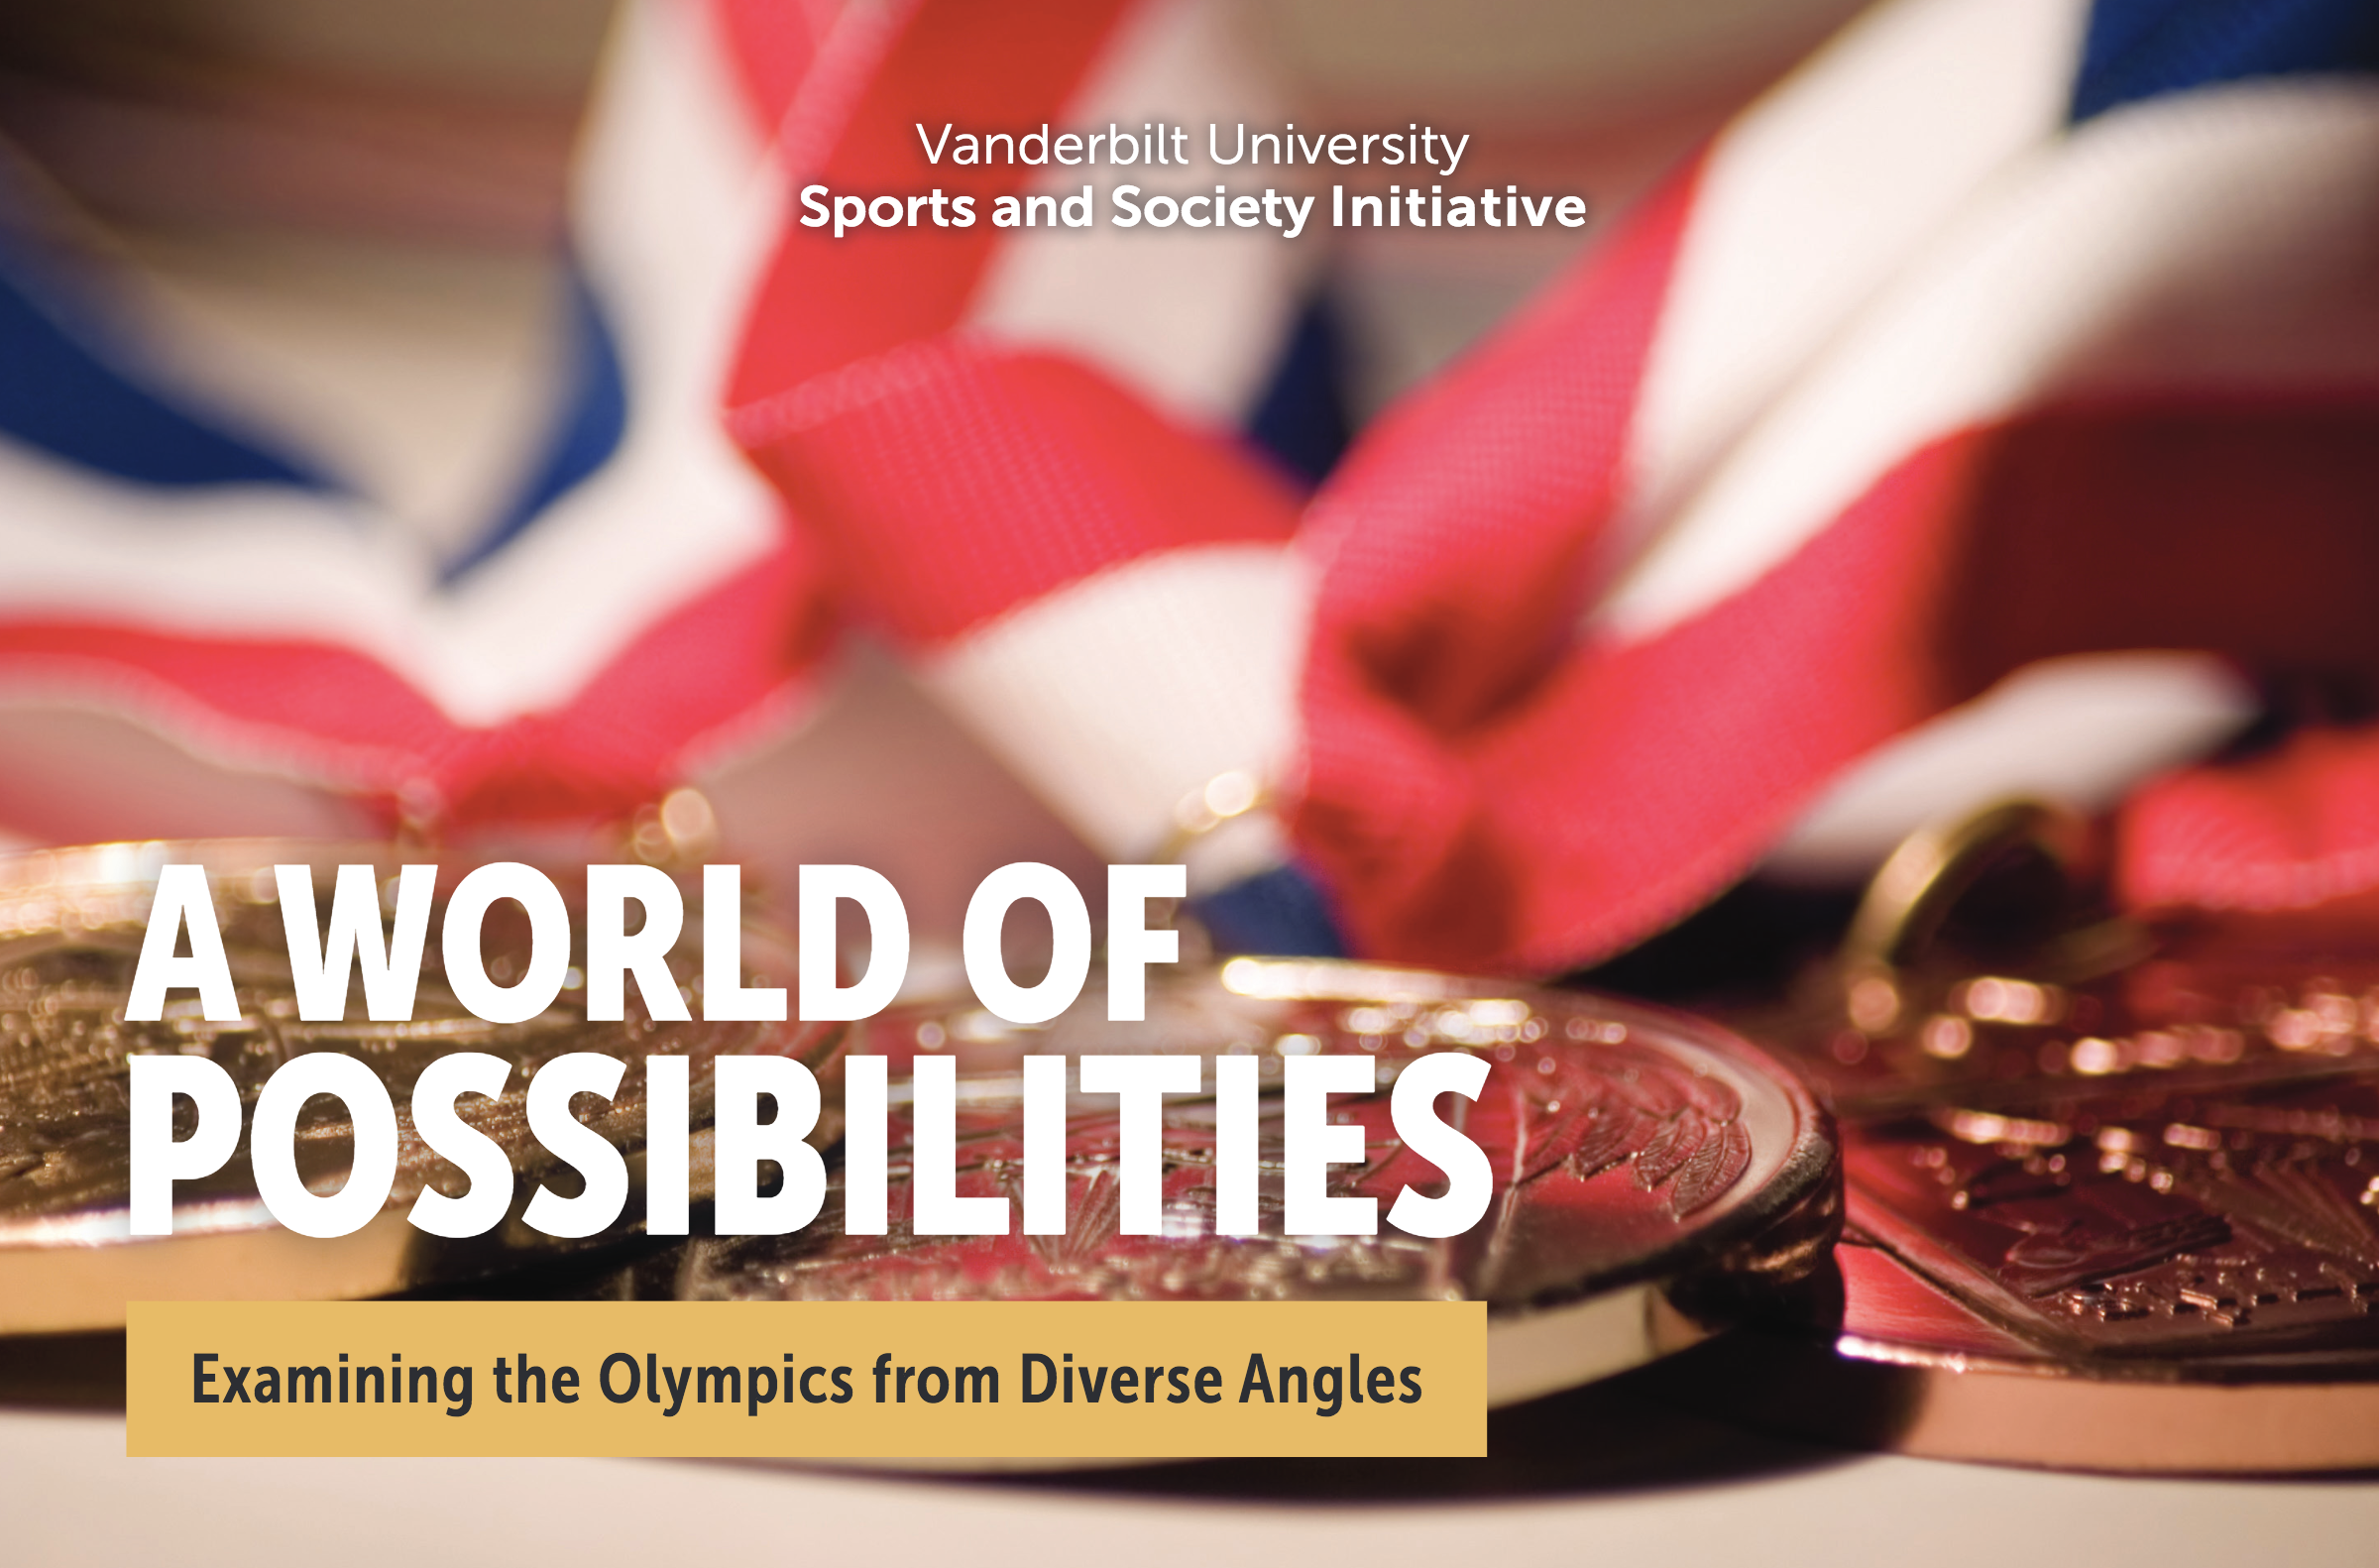 Sports and Society Initiative. A World of Possibilities: Examining the Olympics from Diverse Angles